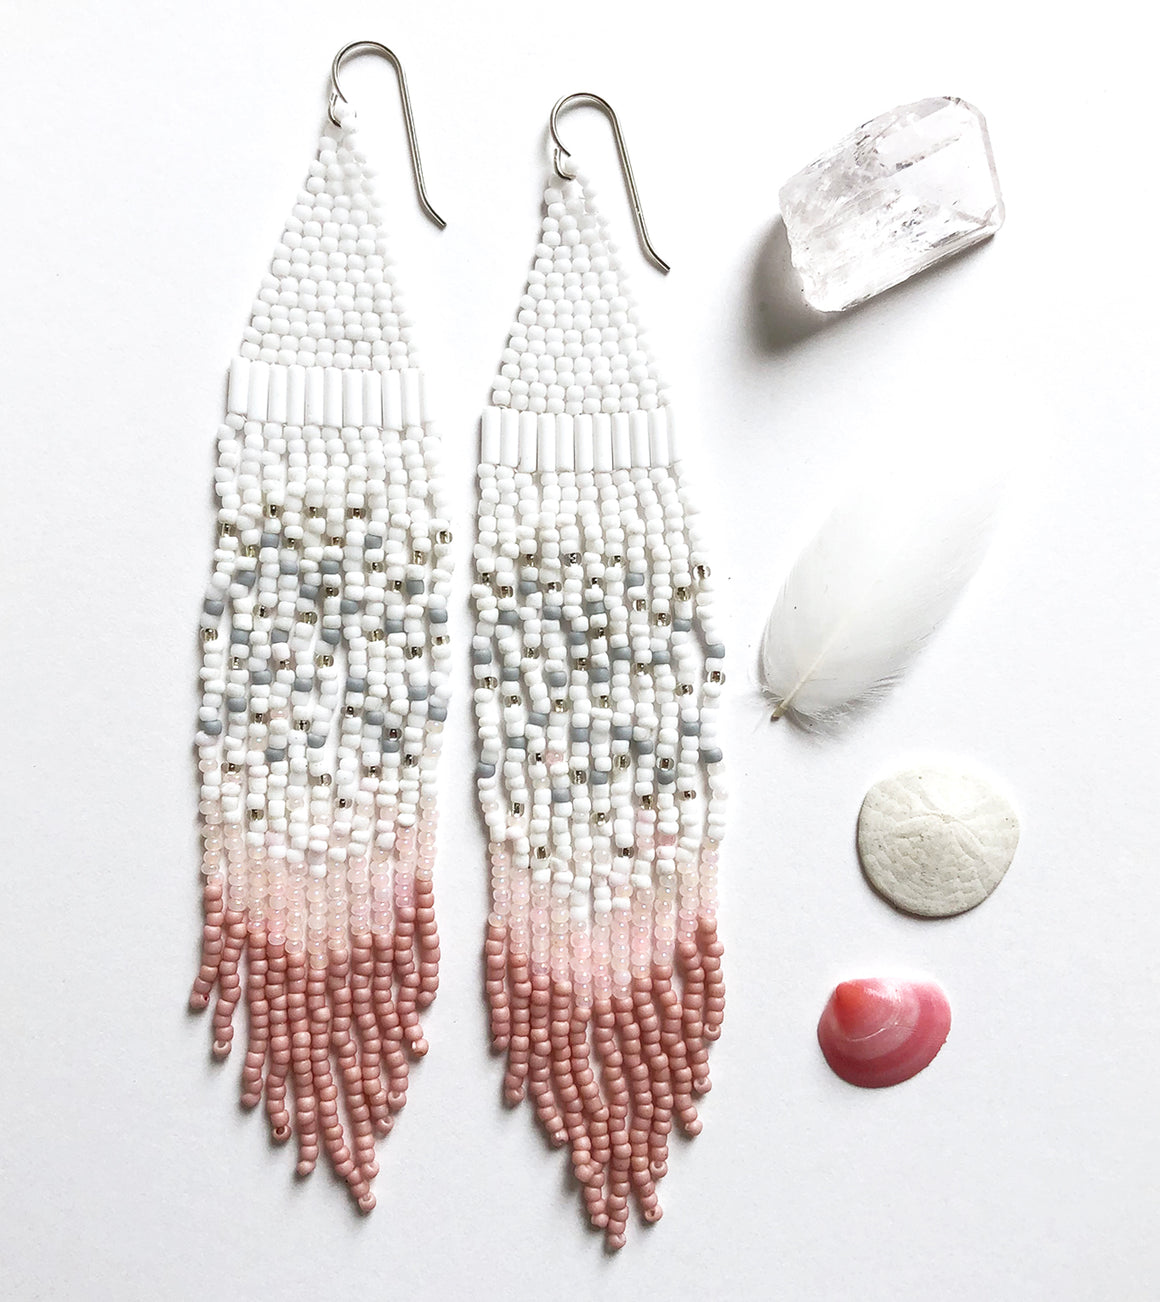 Extra long Handmade Seed Bead Fringe Earrings - blush pink, white and silver vintage beads combined with matte gray and pink